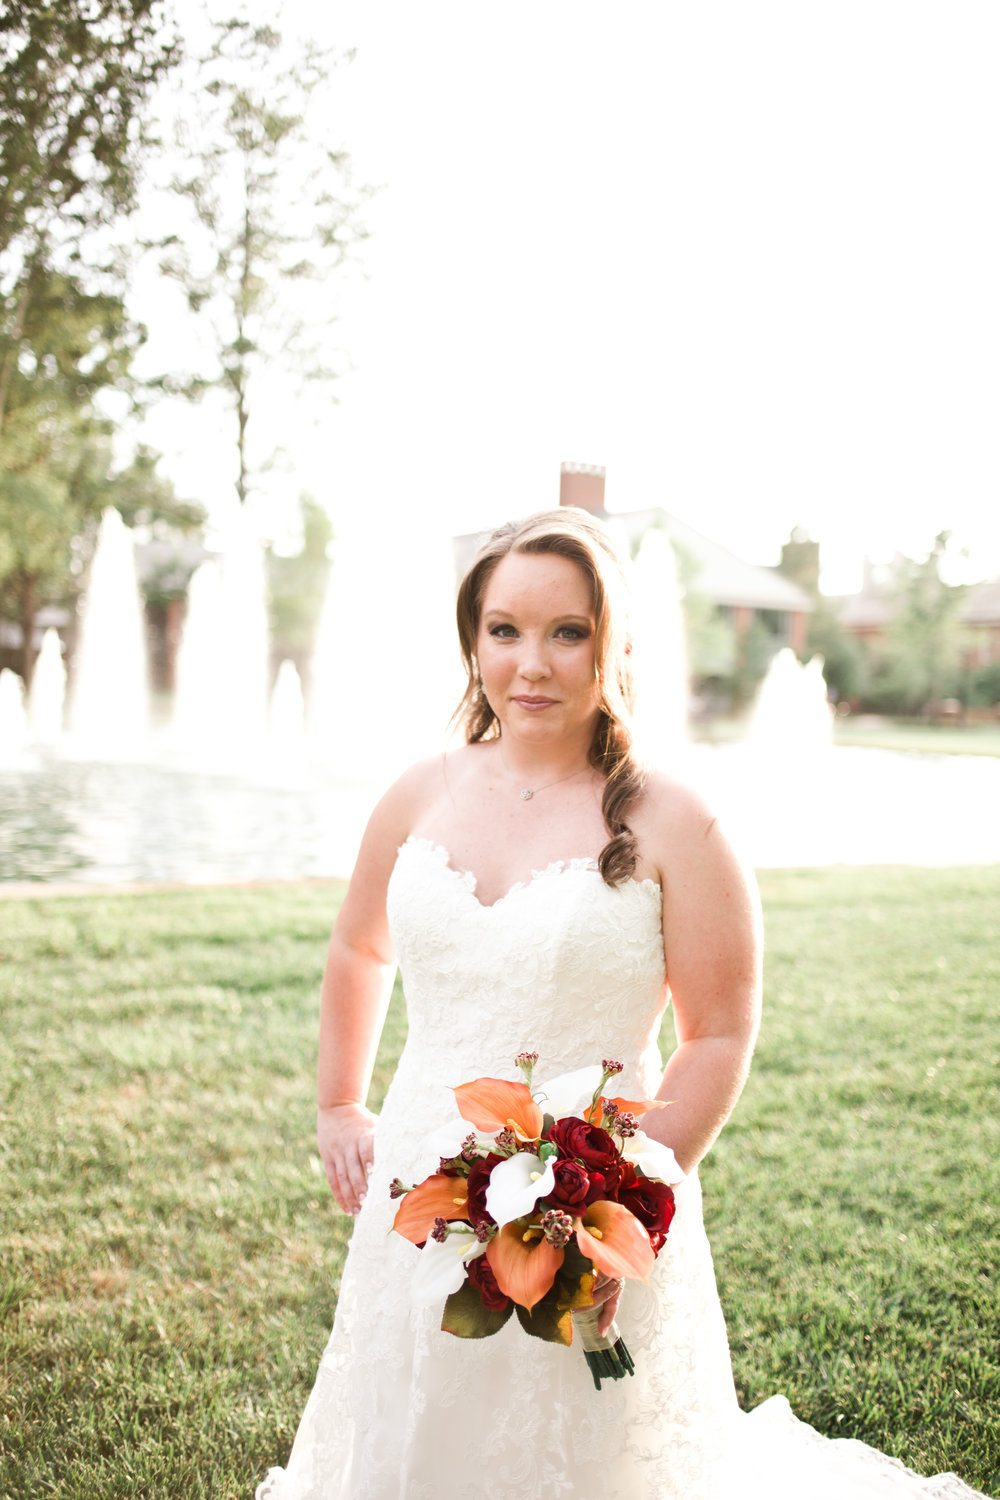 gabbie_bridal_poured_out_photography-58.jpg